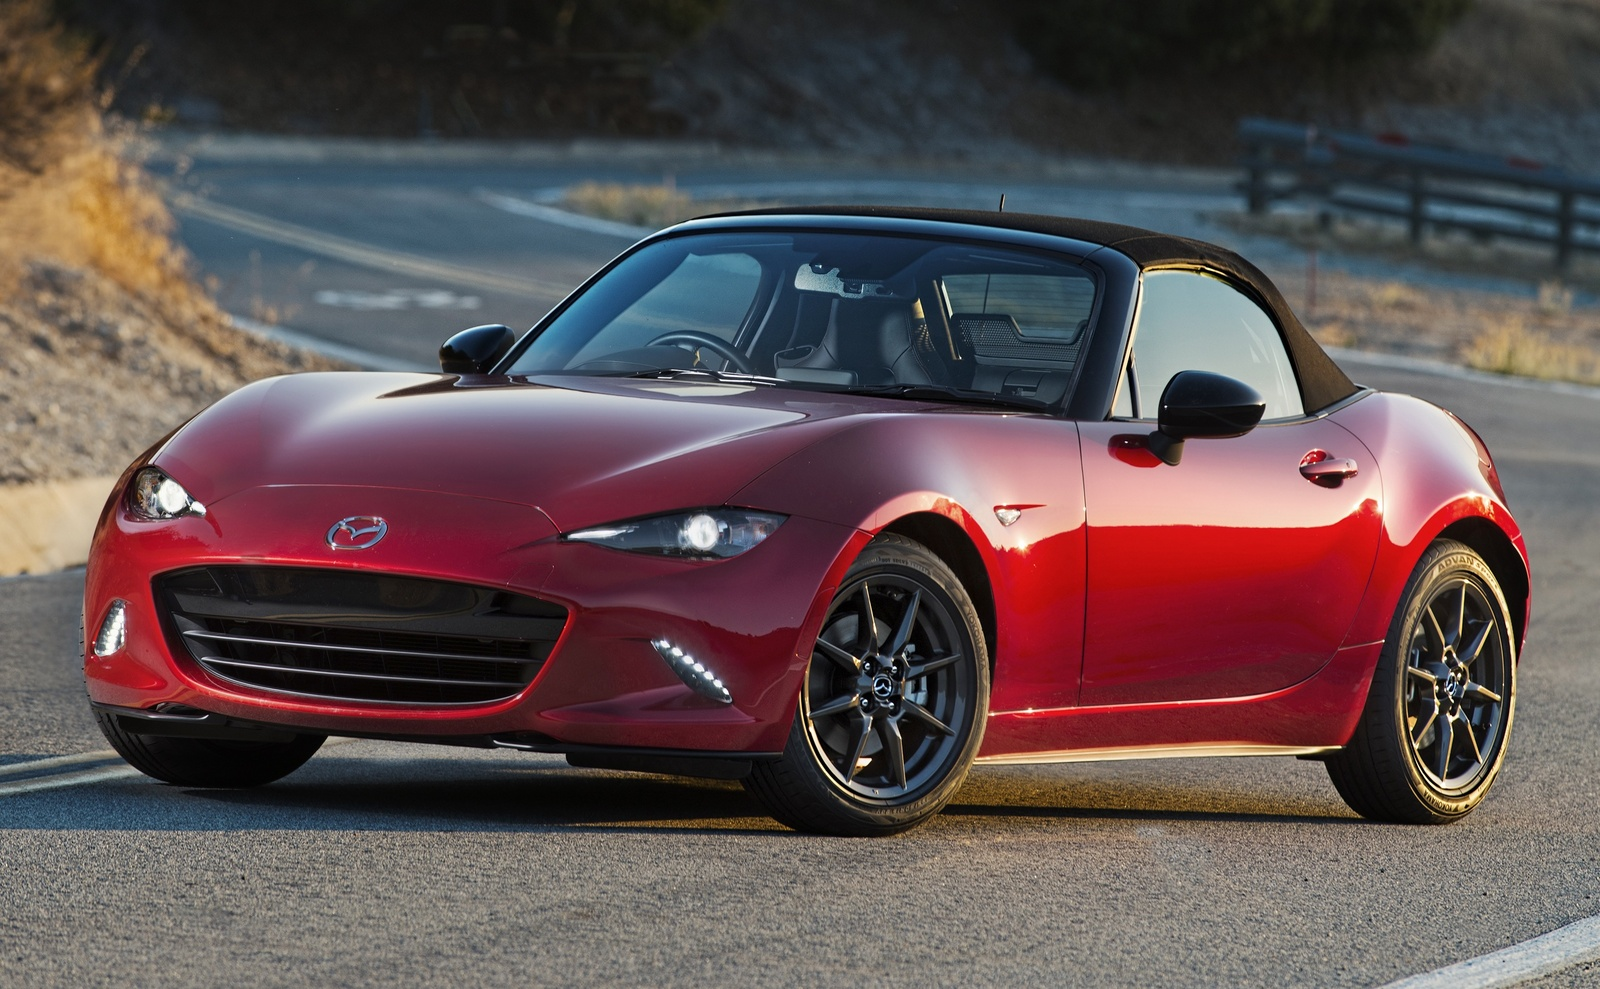 2016 mazda mx 5 miata pictures cargurus. Black Bedroom Furniture Sets. Home Design Ideas